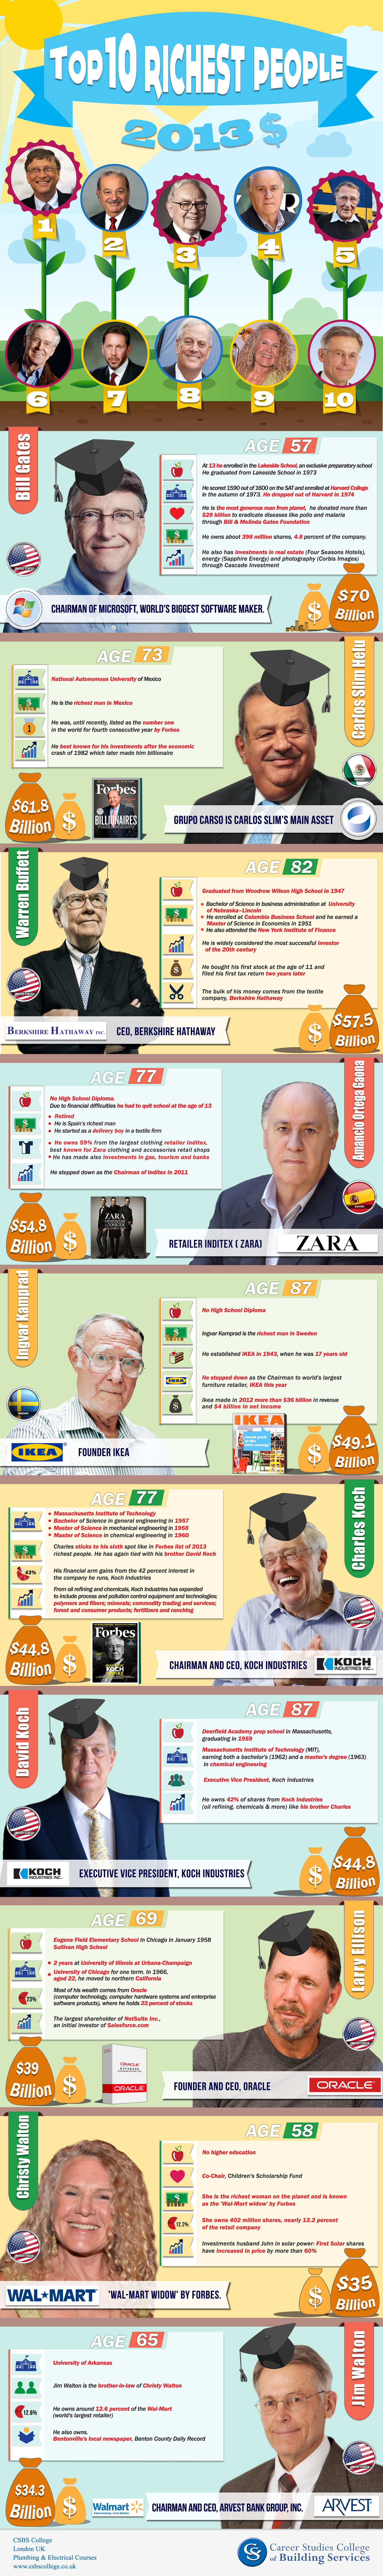 Top 10 Richest People In the World in 2013